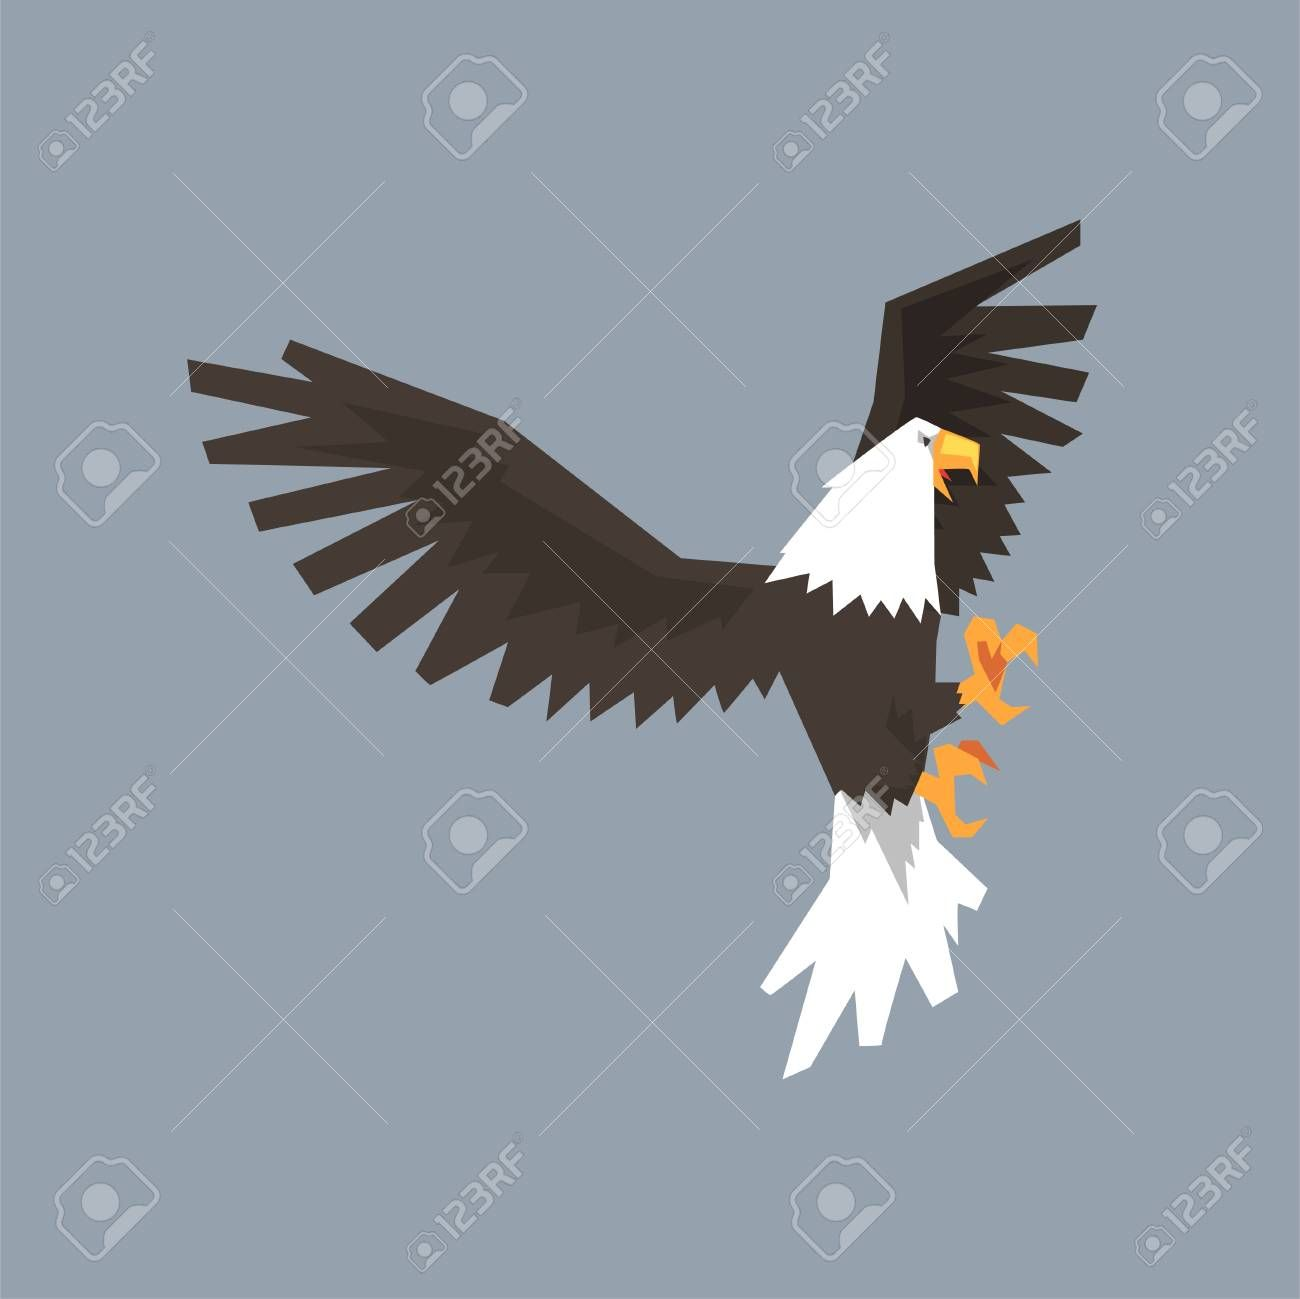 North American Bald Eagle Character With Outstretched Wings Symbol Of Freedom And Independence Vector Il Cartoon Styles Bald Eagle Business Advertising Design